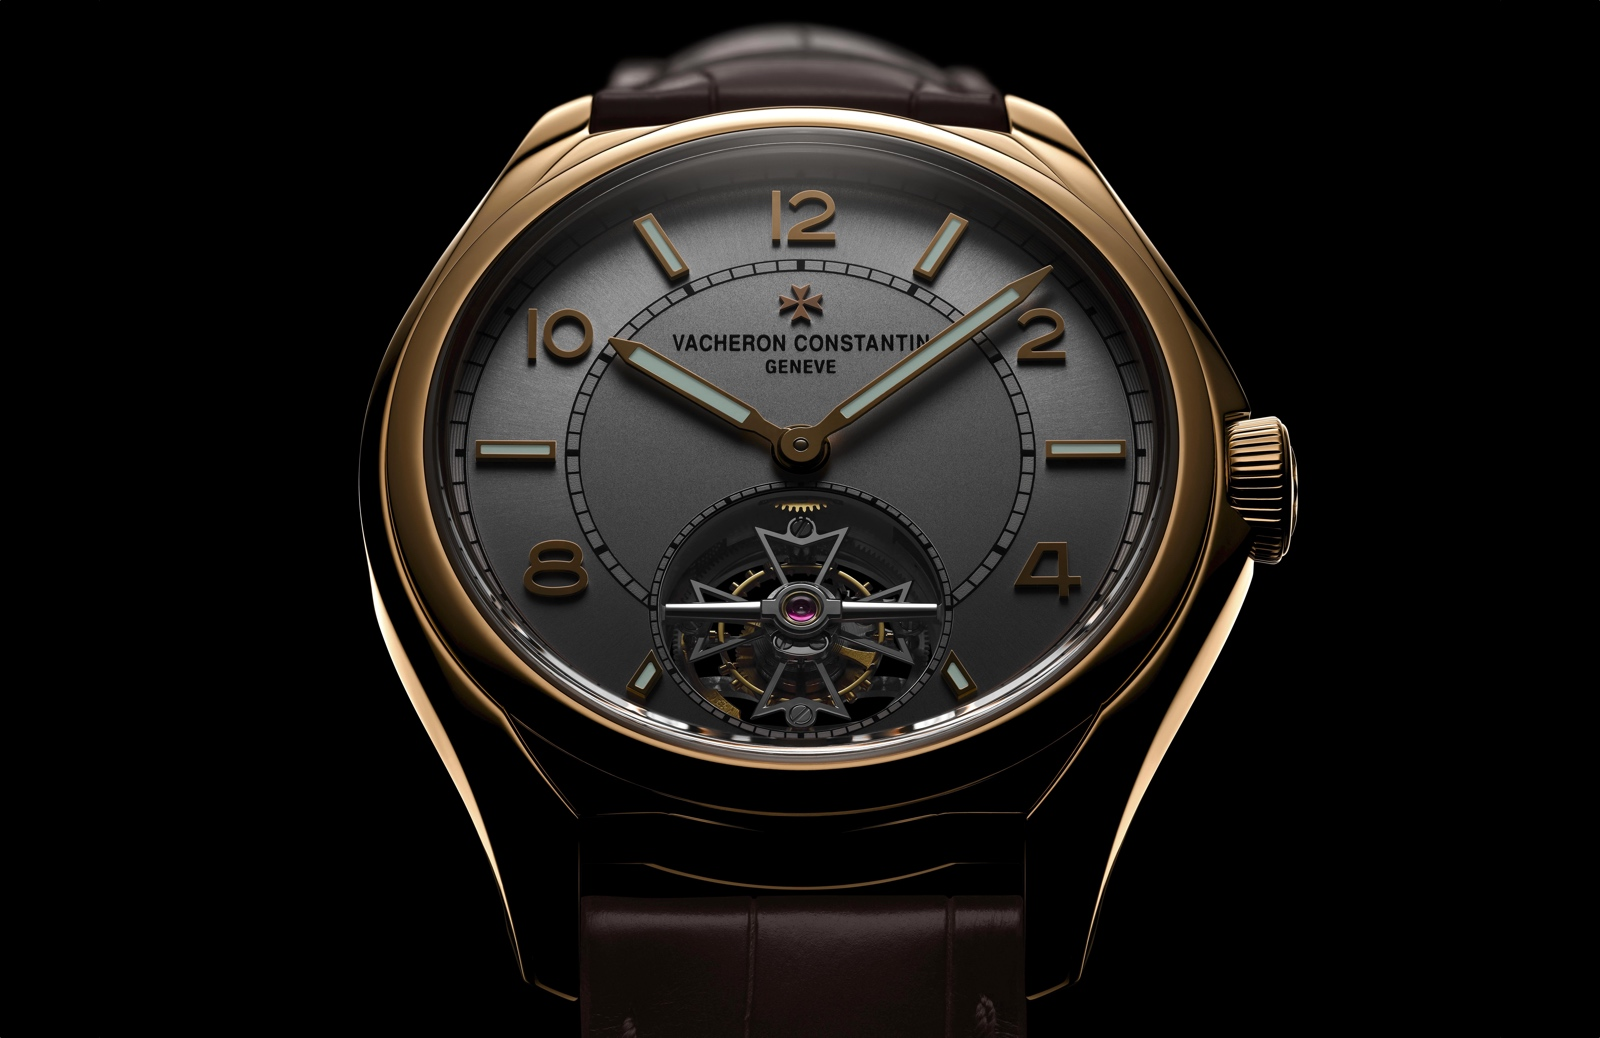 Vacheron Constantin Fiftysix Tourbillon - luminiscencia